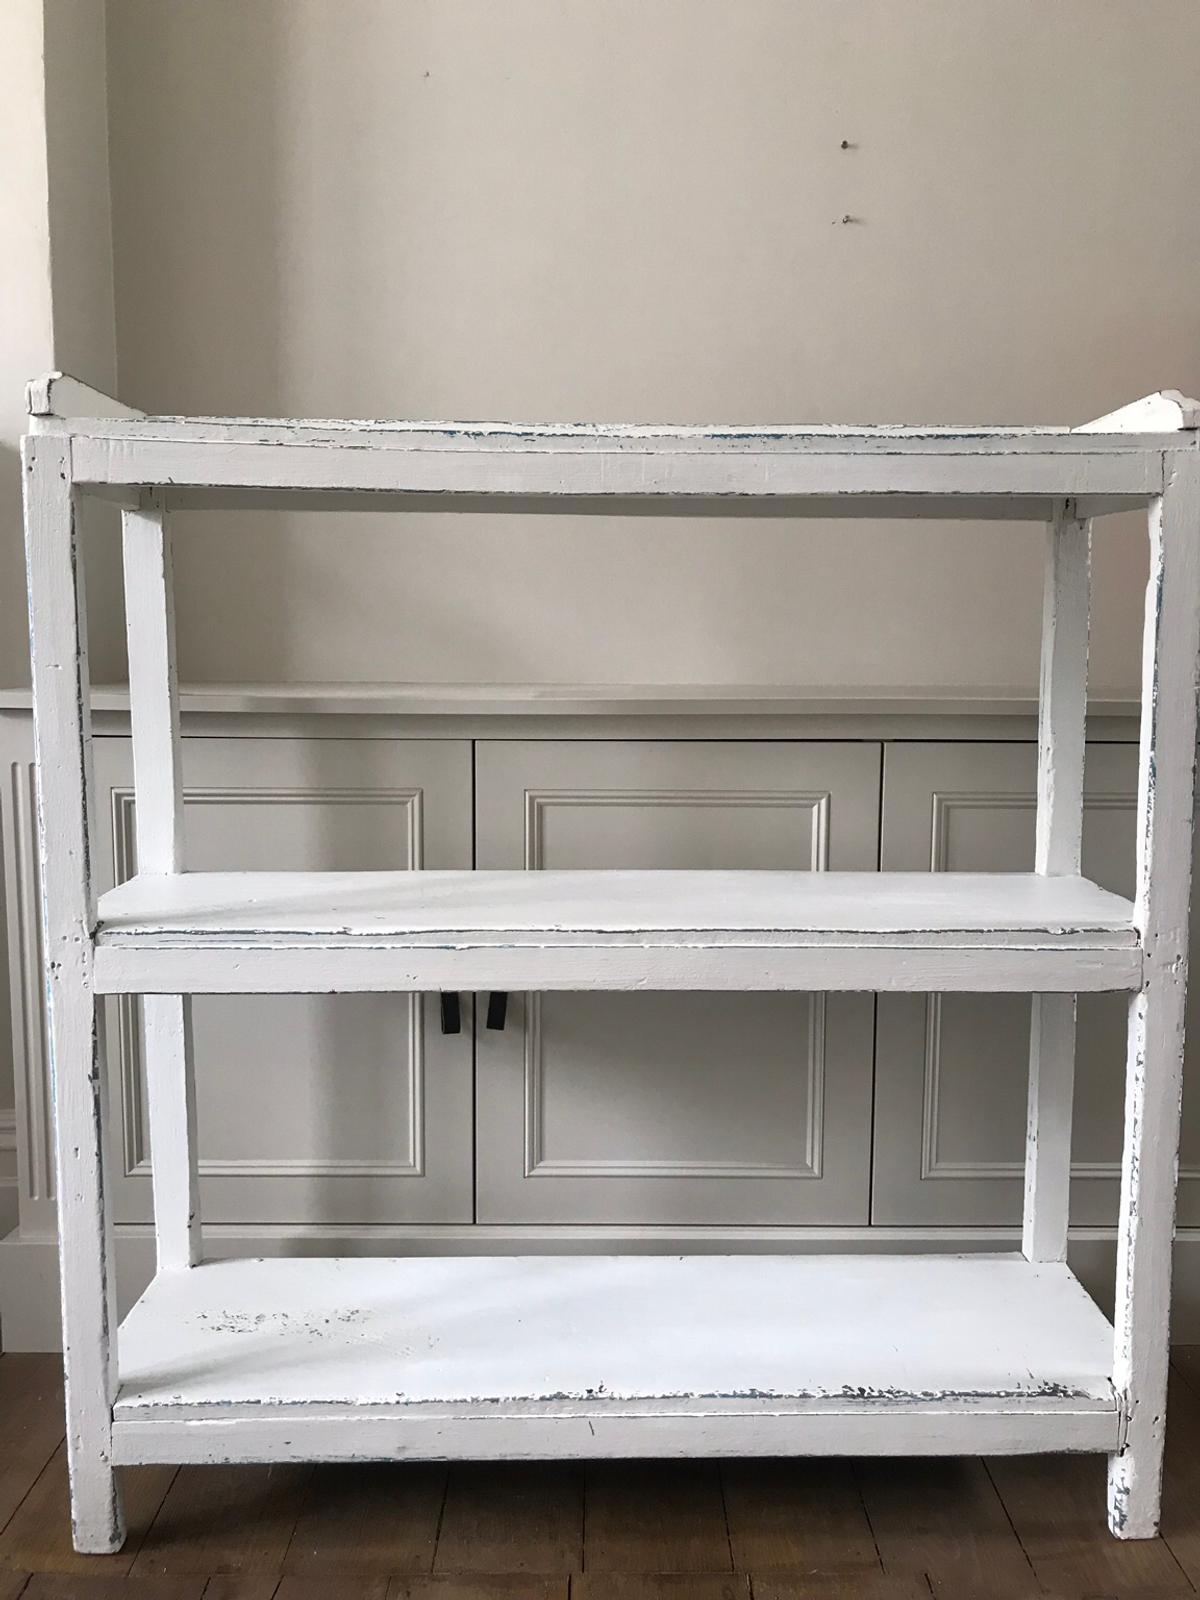 White Bookcase Display Shelf Now Free In Sw4 London For